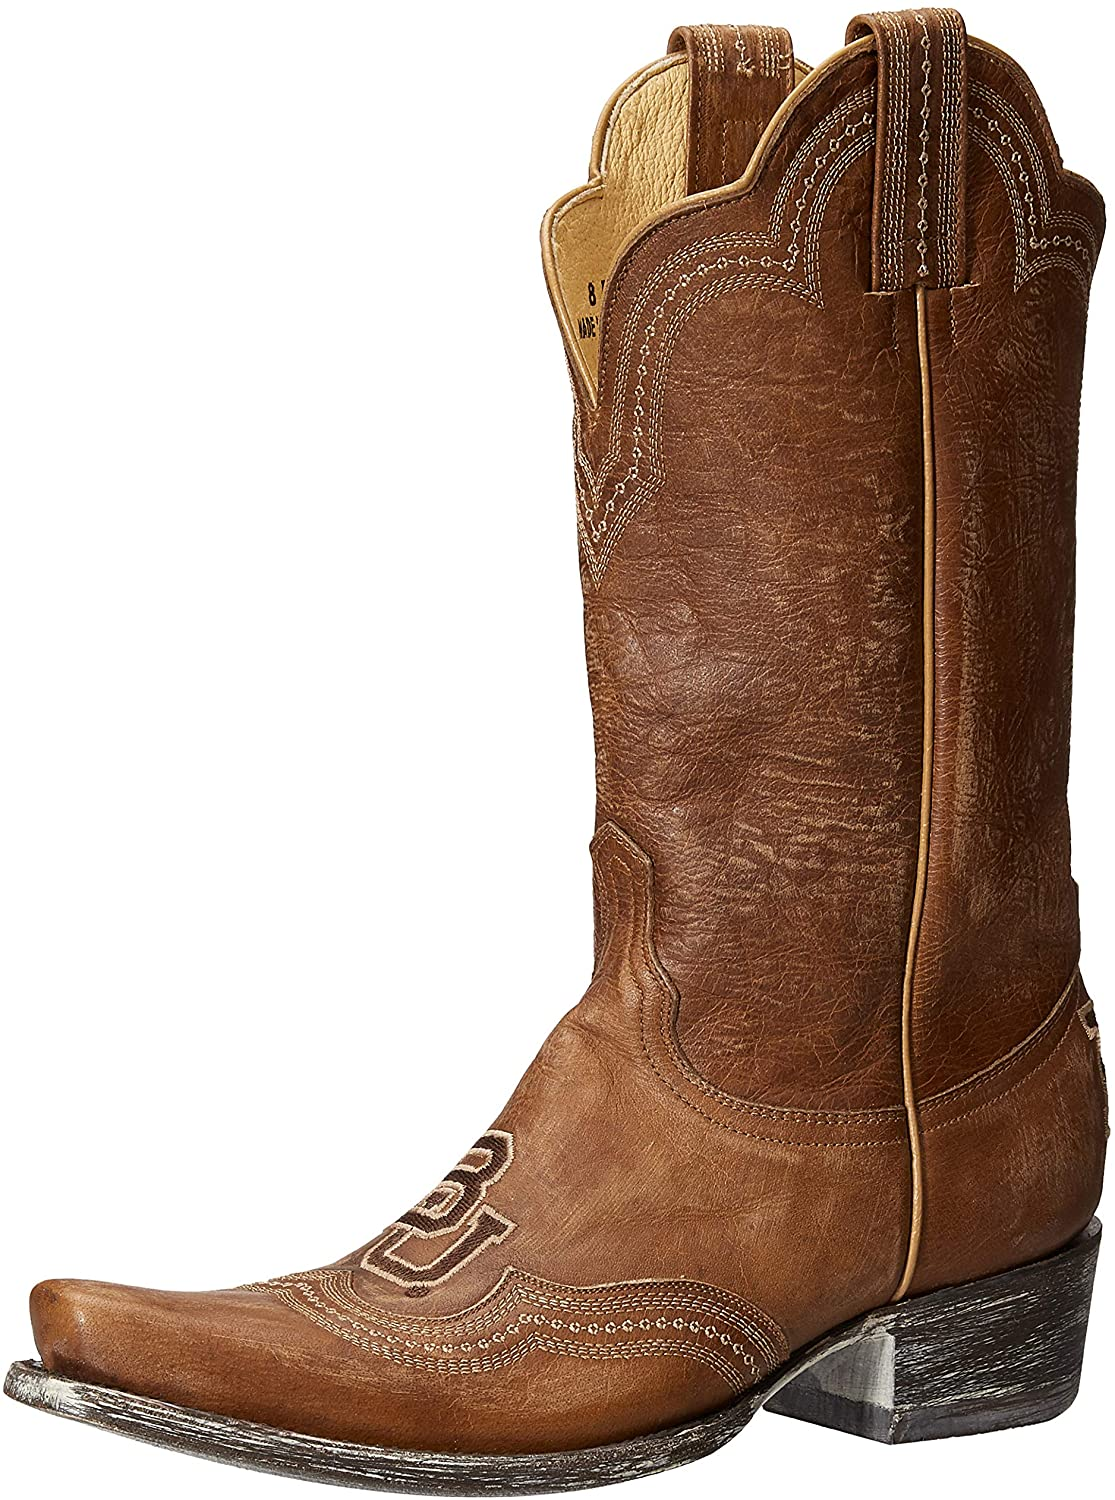 Gameday Boots Womens College Baylor 11 Shaft